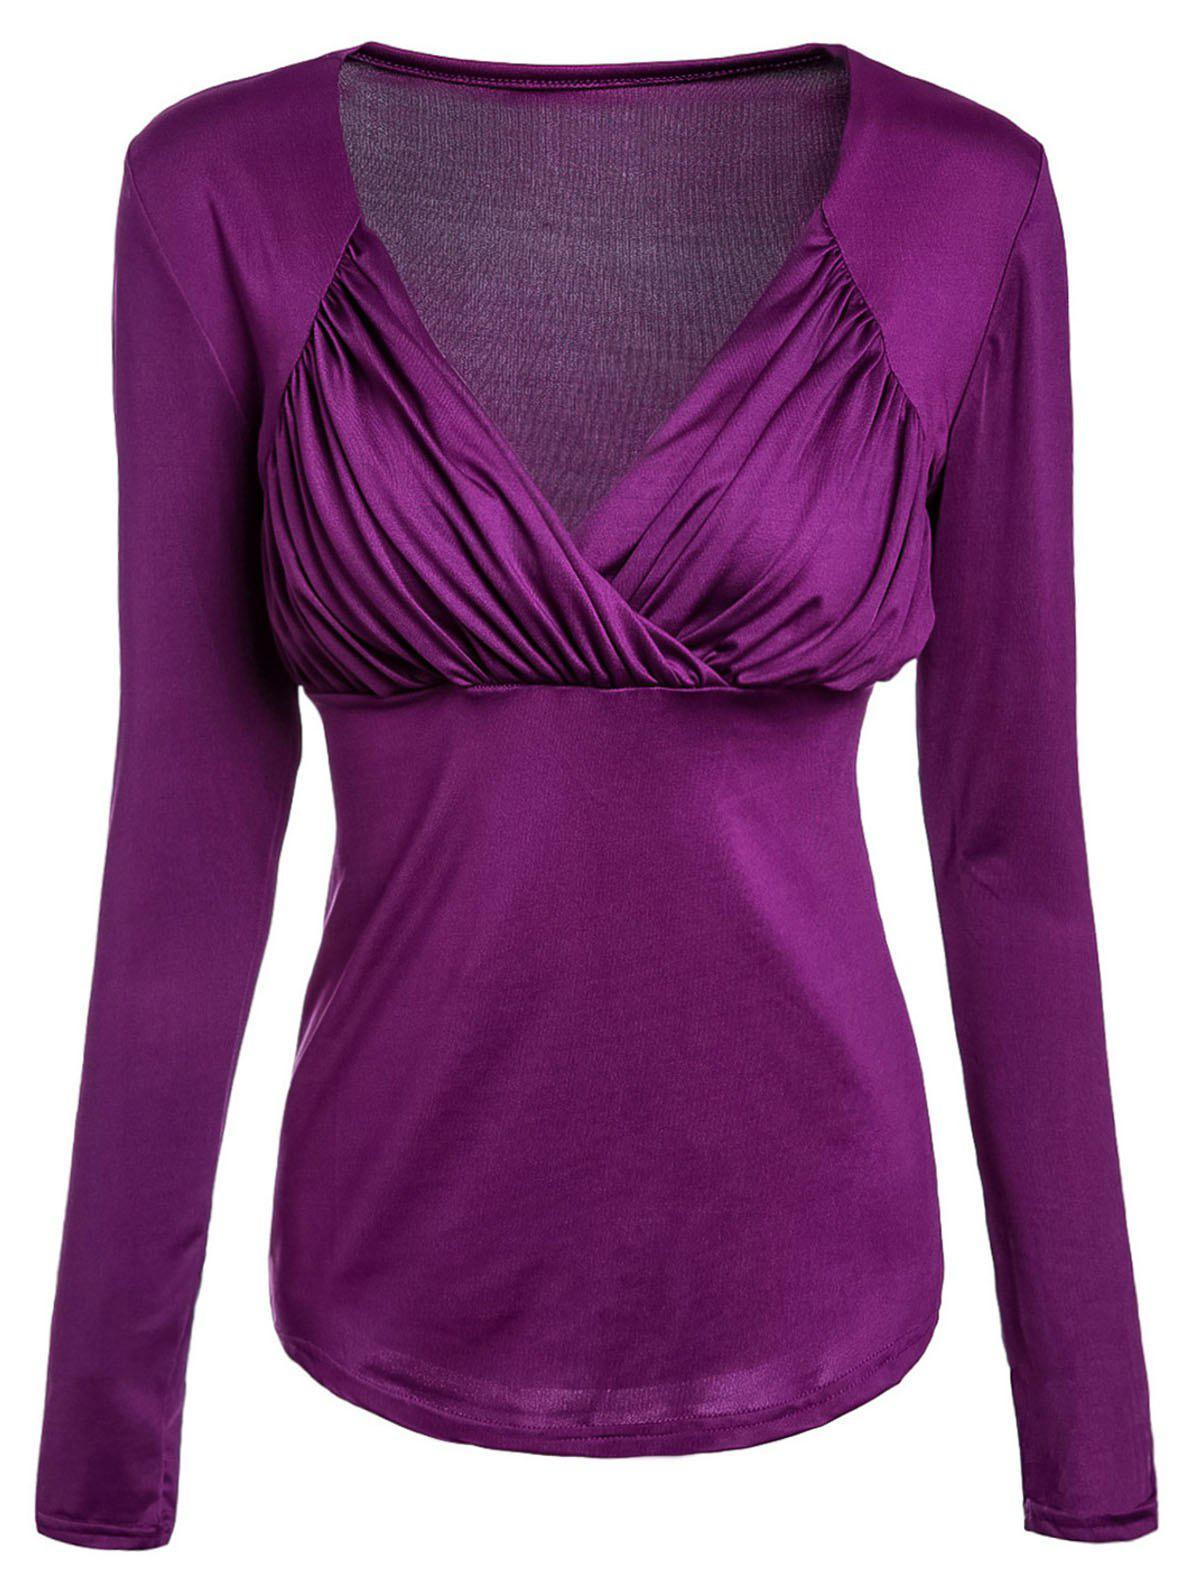 Brief Solid Color Sweetheart Neck Long Sleeve T-Shirt For Women - PURPLE M